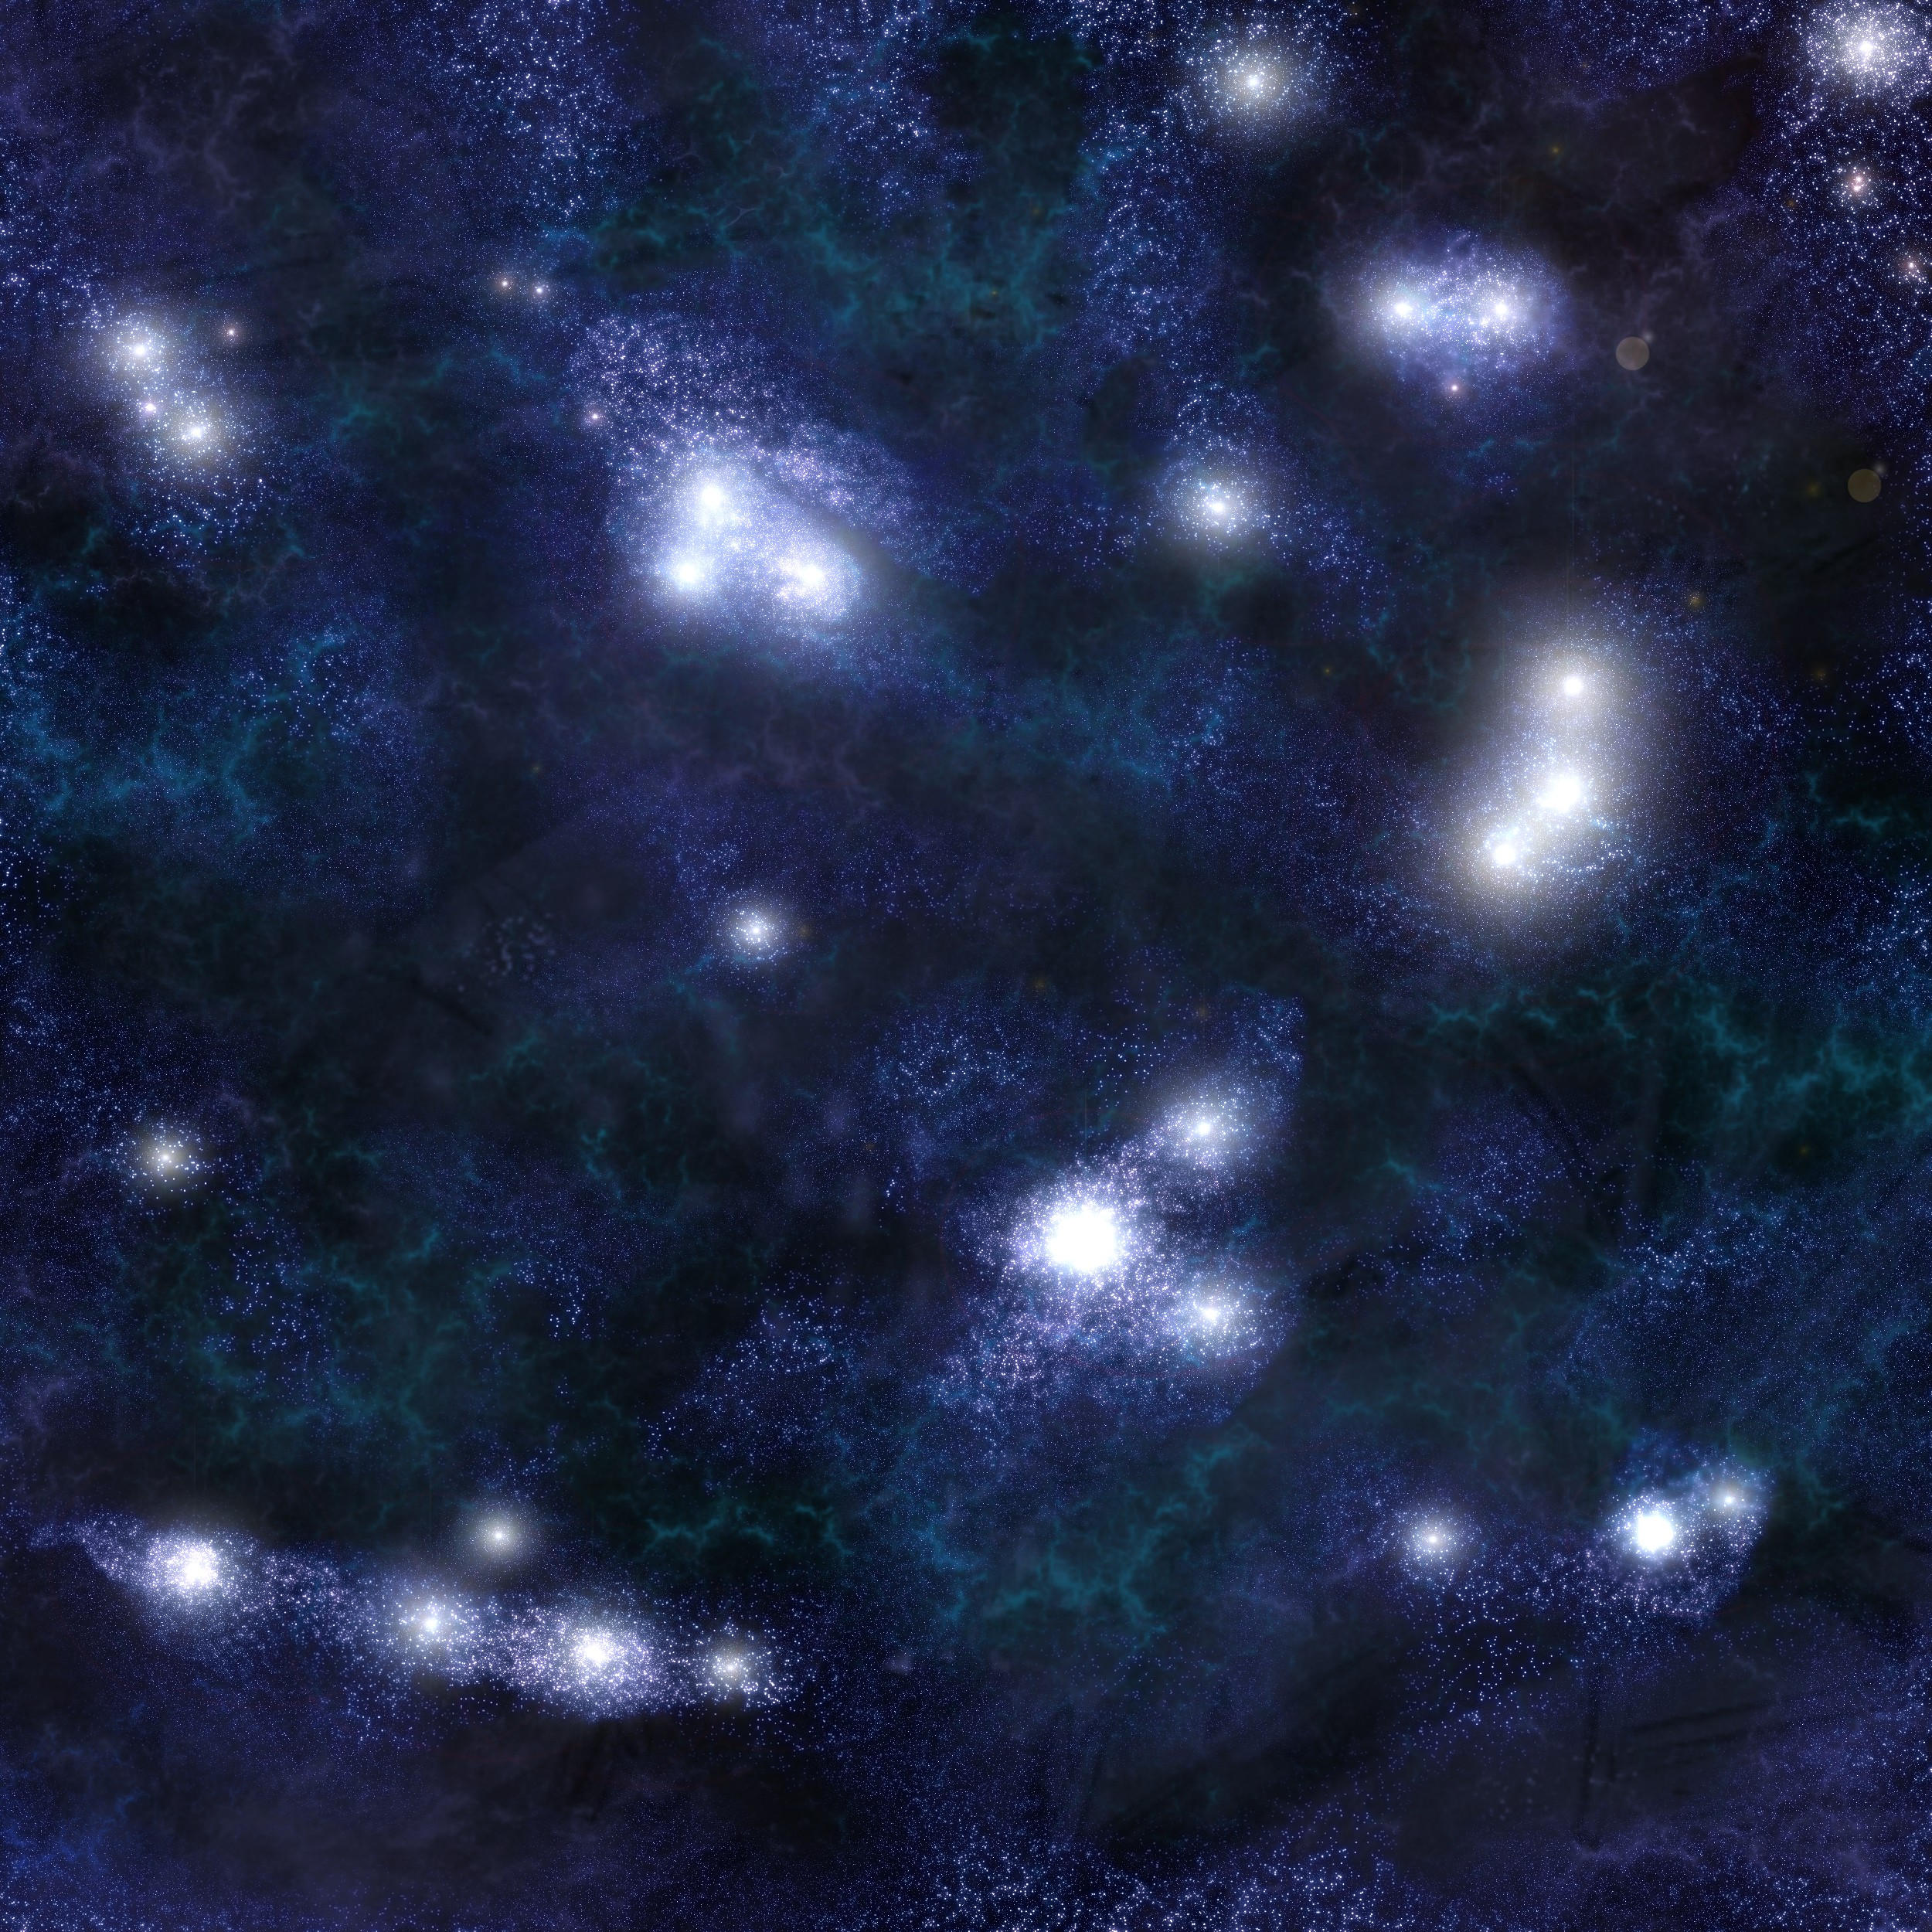 Starfield Texture by Qzma